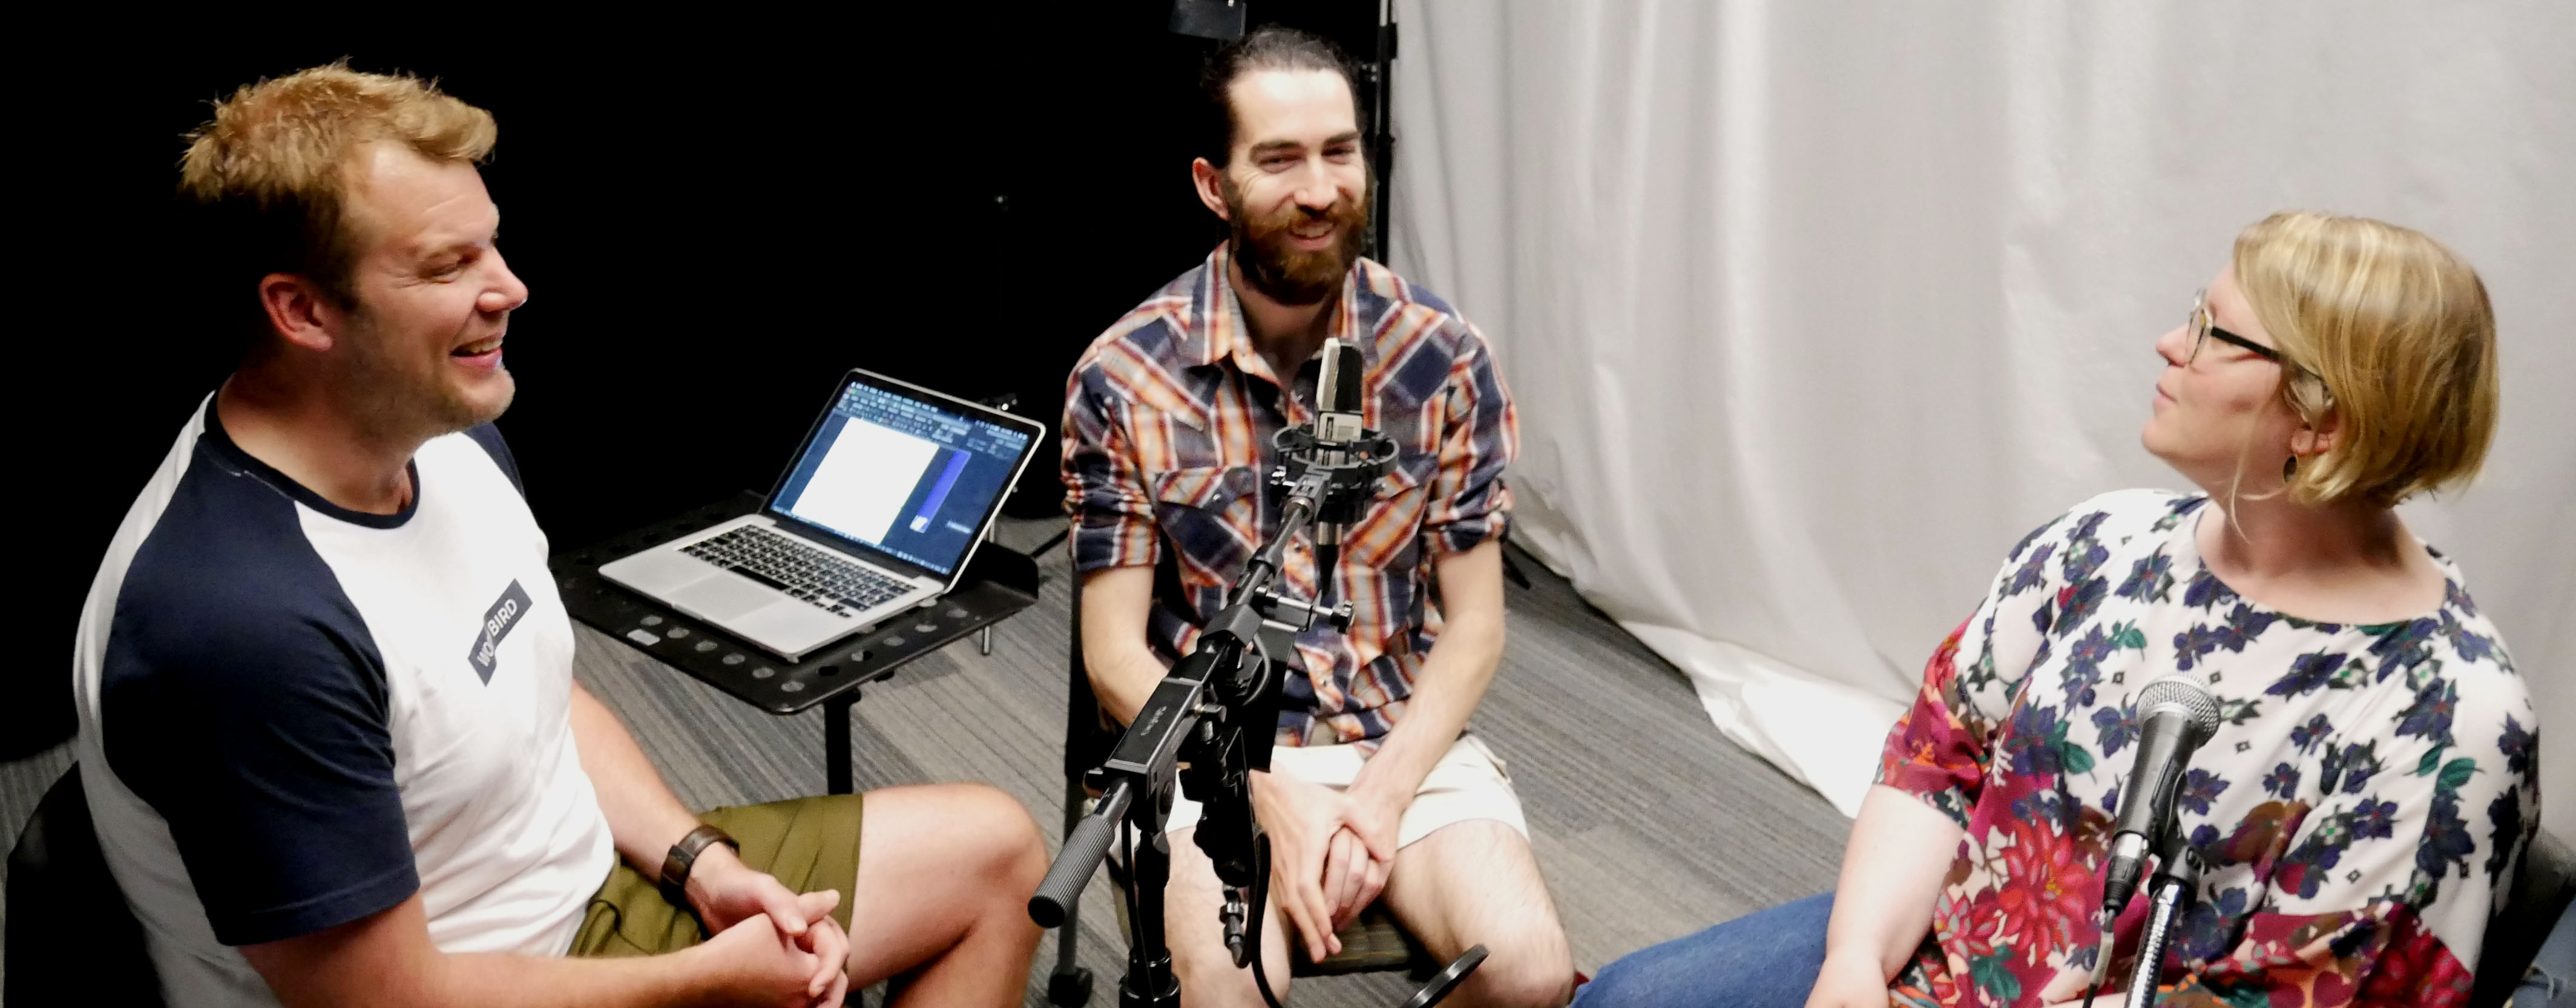 Producer Colin Connors and Kristian Naesby sit around a microphone with Olivia Gunn.